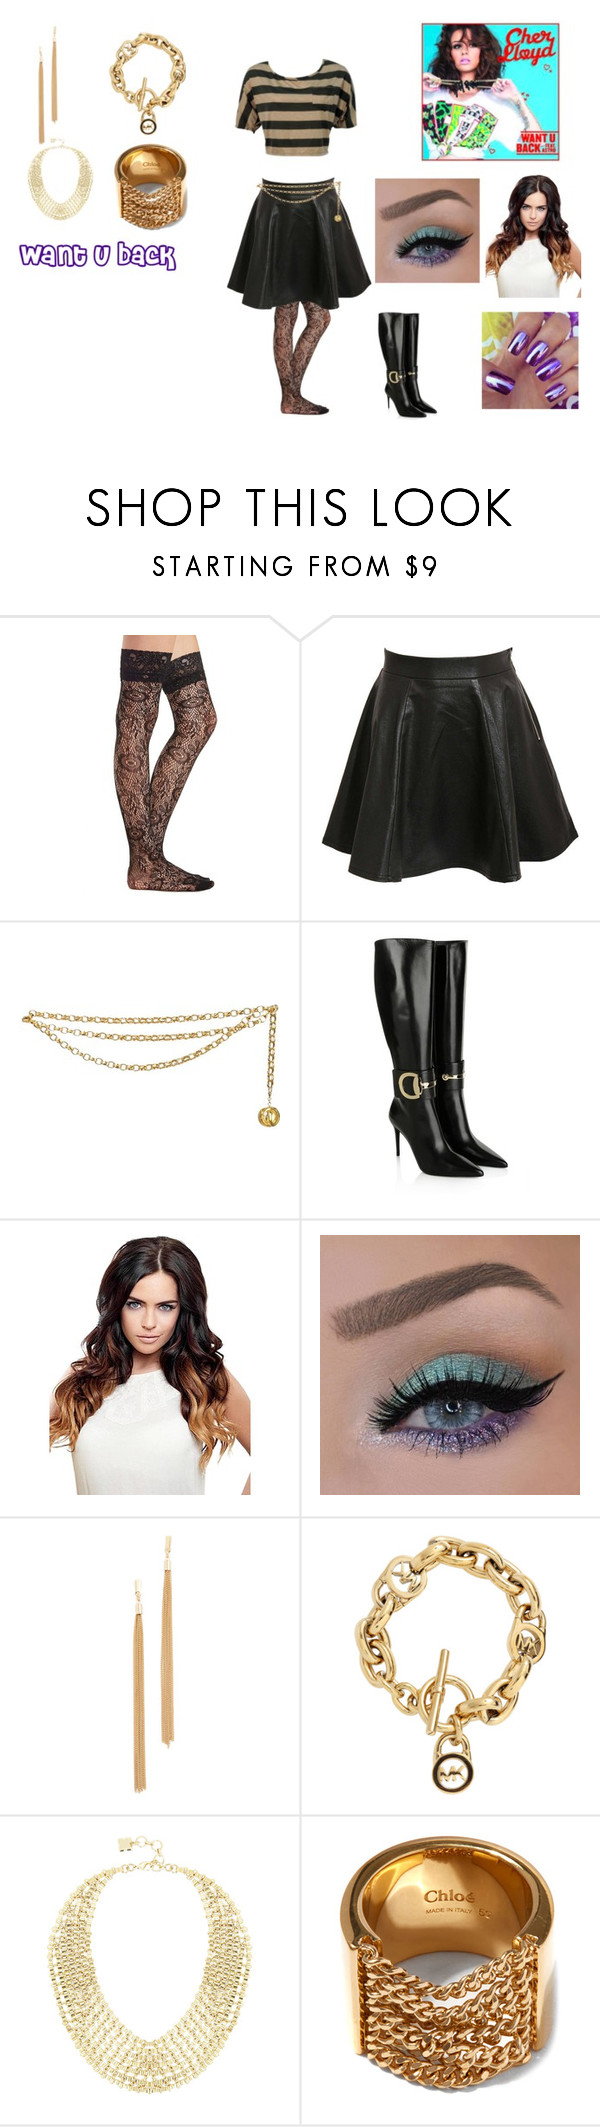 """Want U Back by Cher Lloyd"" by ocean-goddess ❤ liked on Polyvore featuring Charlotte Russe, Pilot, Chanel, Gucci, Jules Smith, Michael Kors, BCBGMAXAZRIA and Chloé"